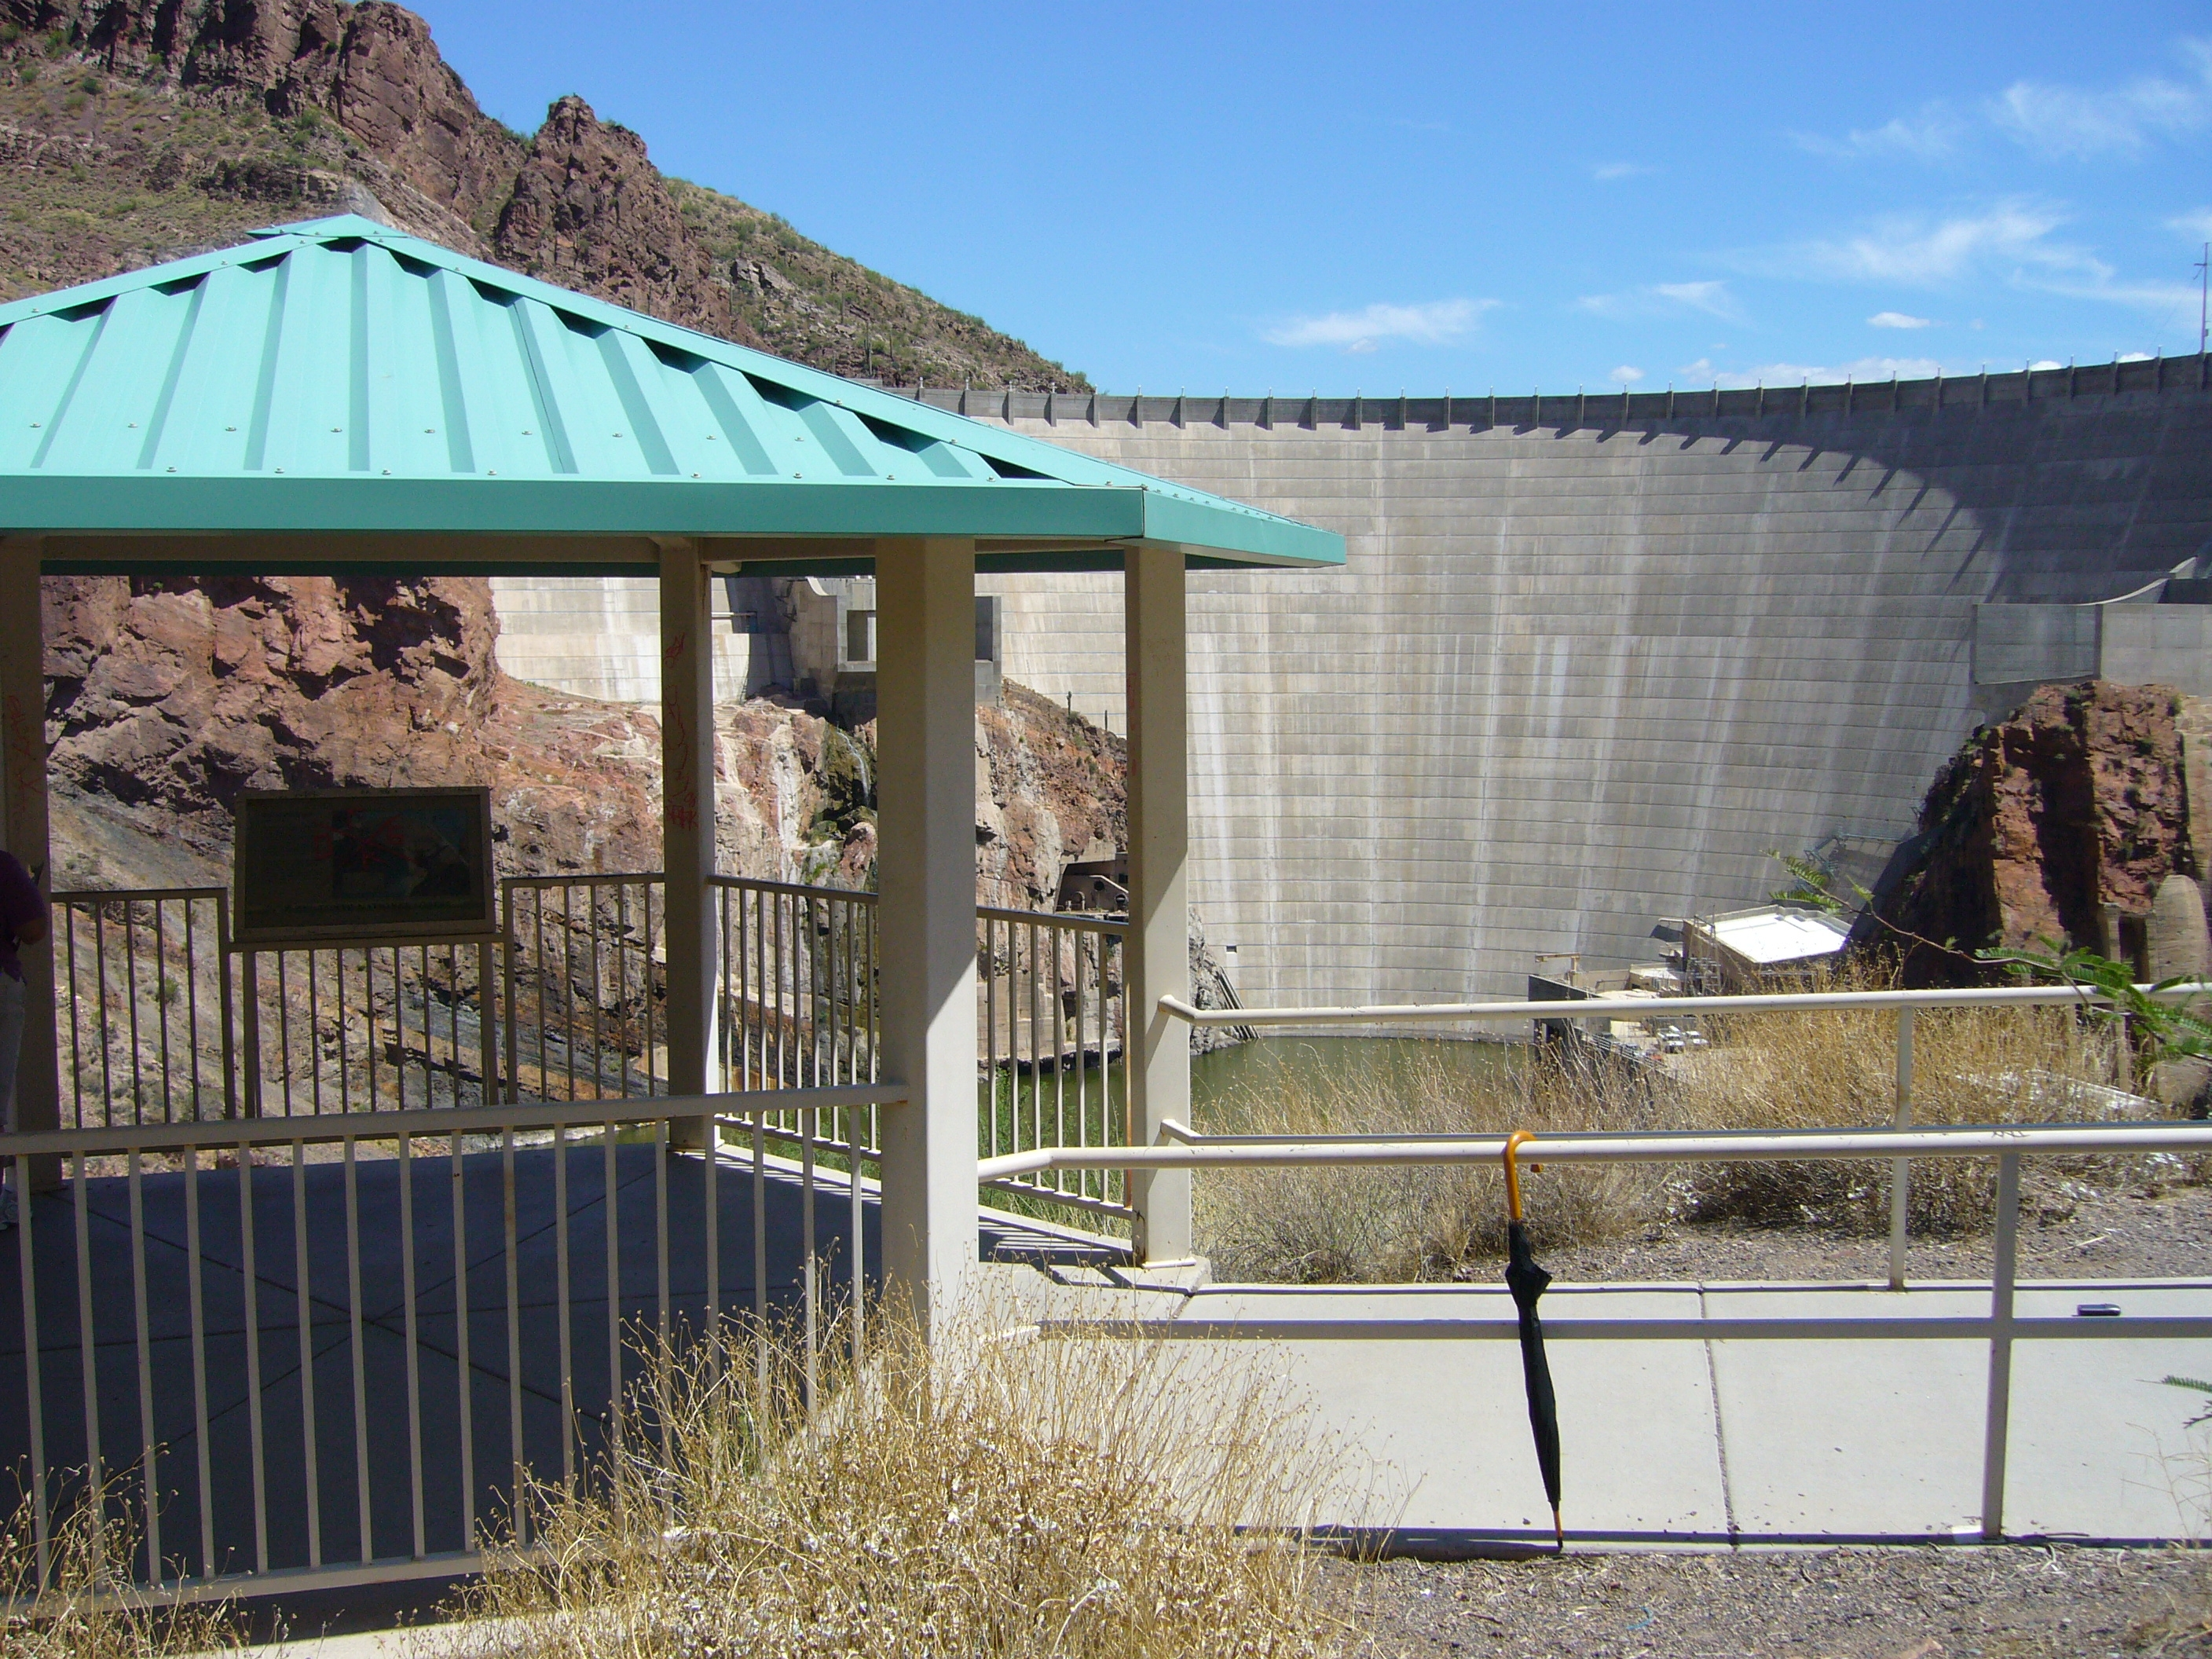 Roosevelt Dam Overlook